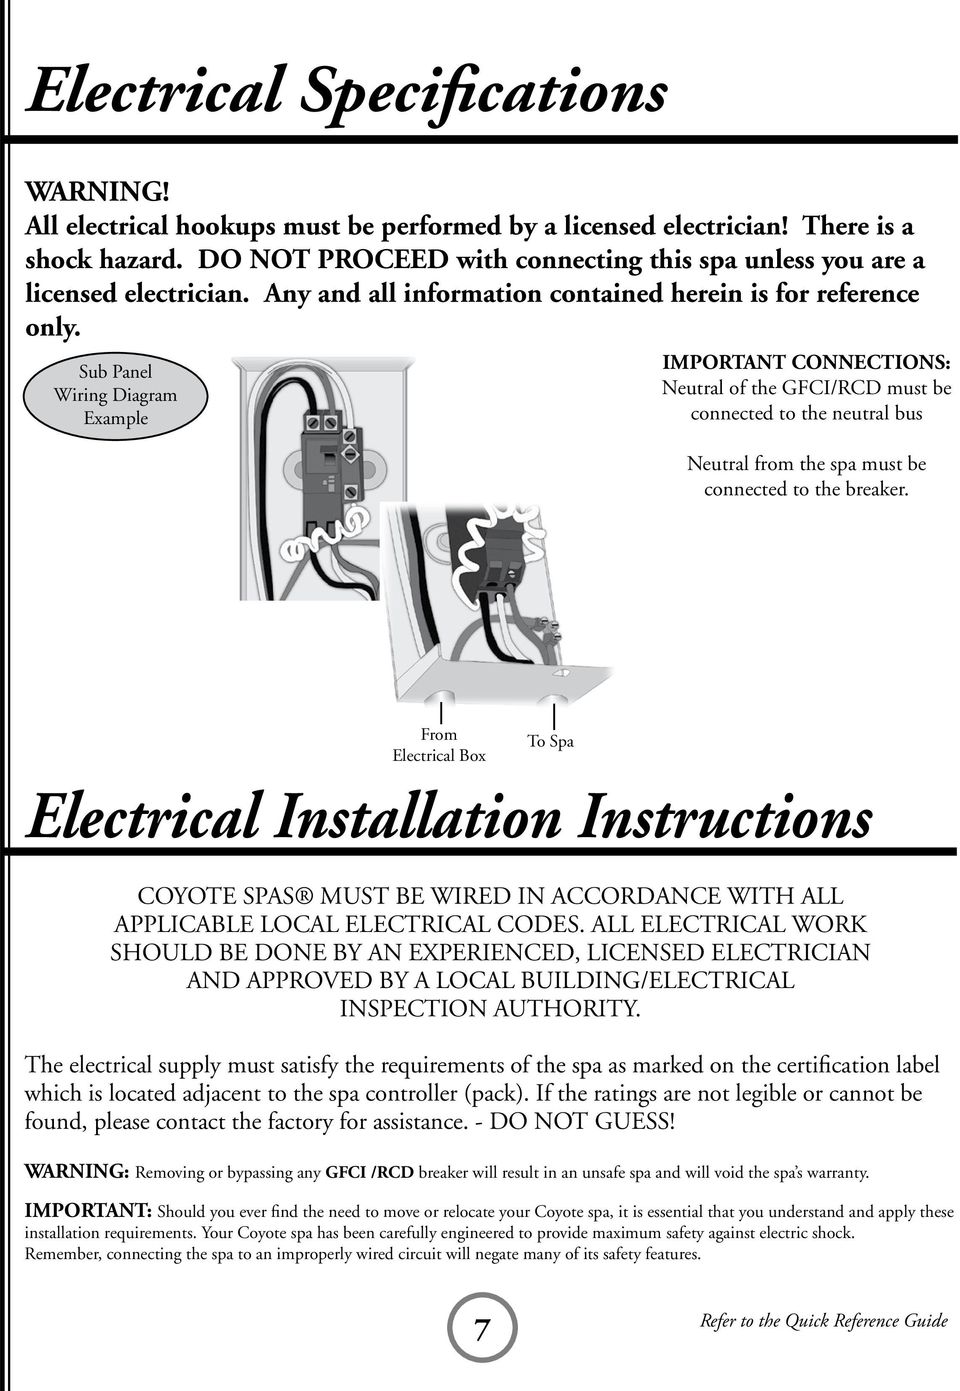 medium resolution of sub panel wiring diagram example important connections neutral of the gfci rcd must be